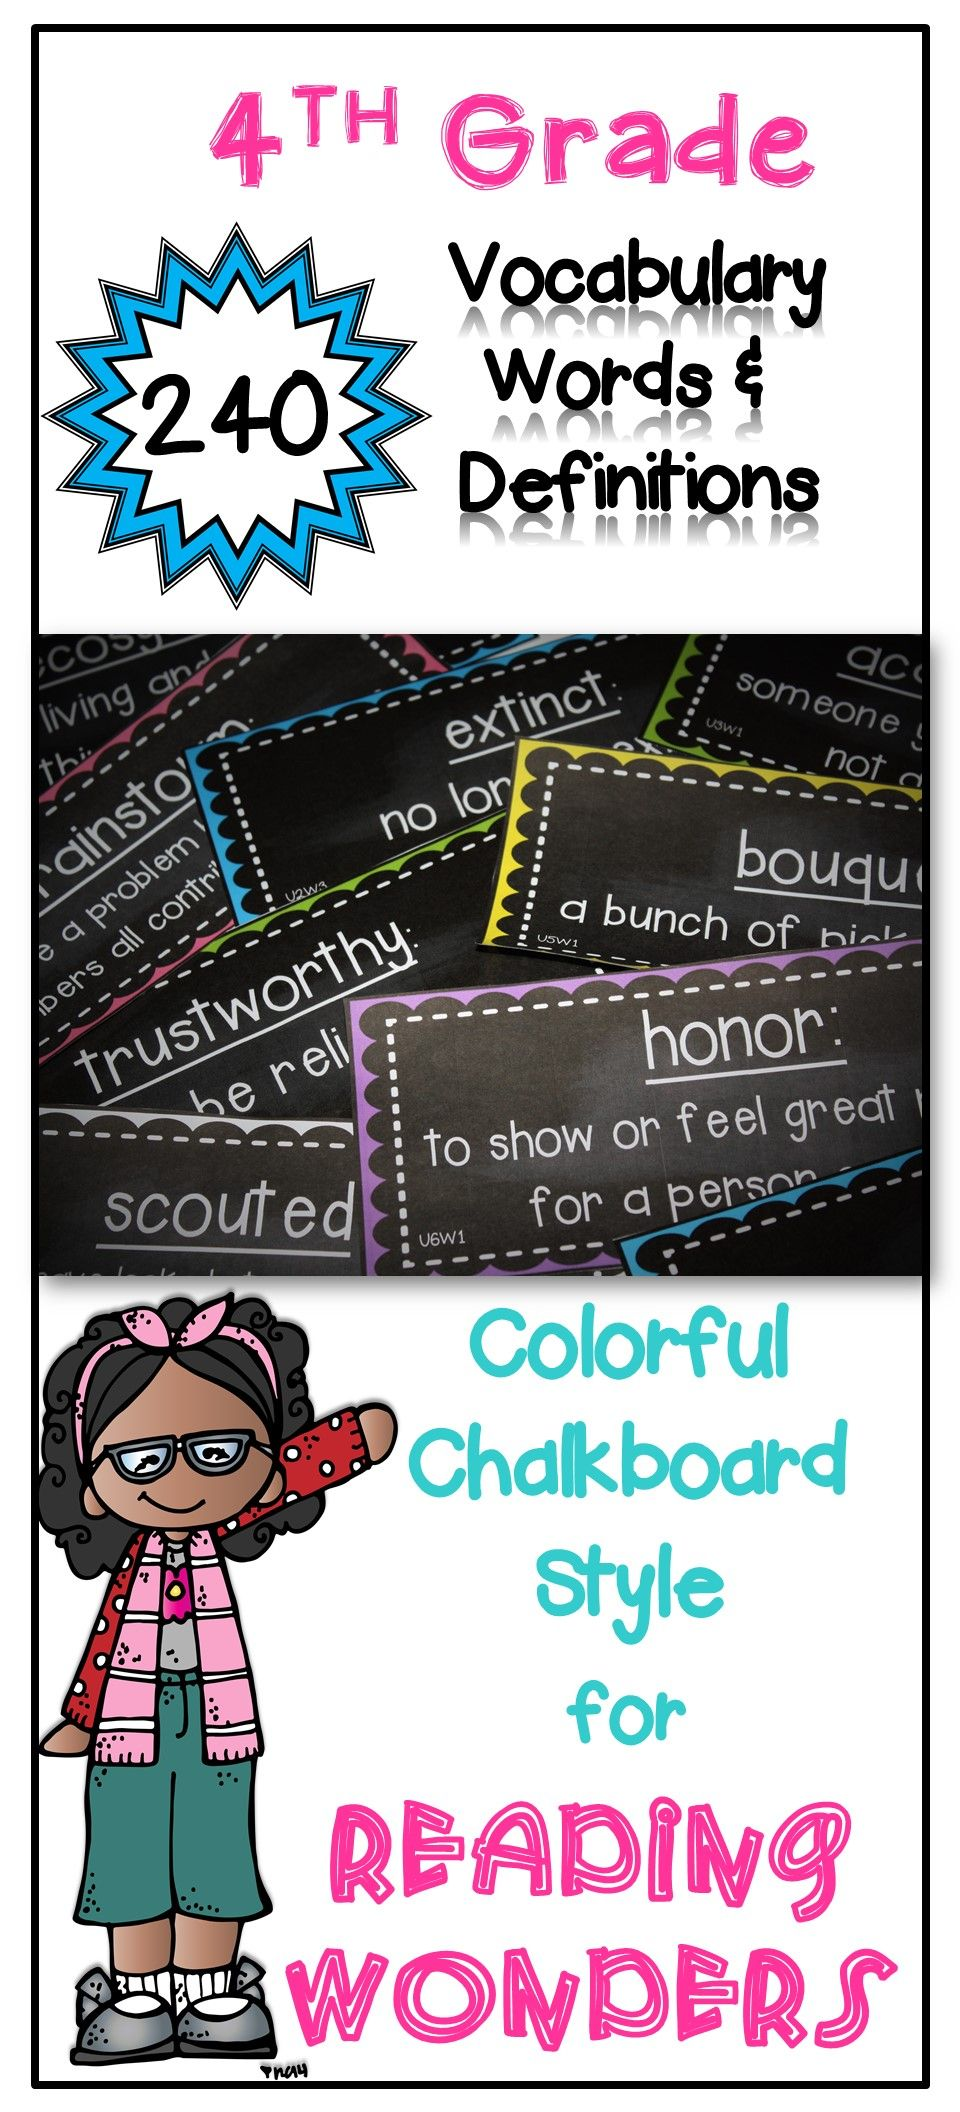 4th grade Reading Wonders vocabulary cards with definitions in a chalkboard and bright decor. Just print and they are ready for the school year.  I use them for my word wall and in vocabulary centers.